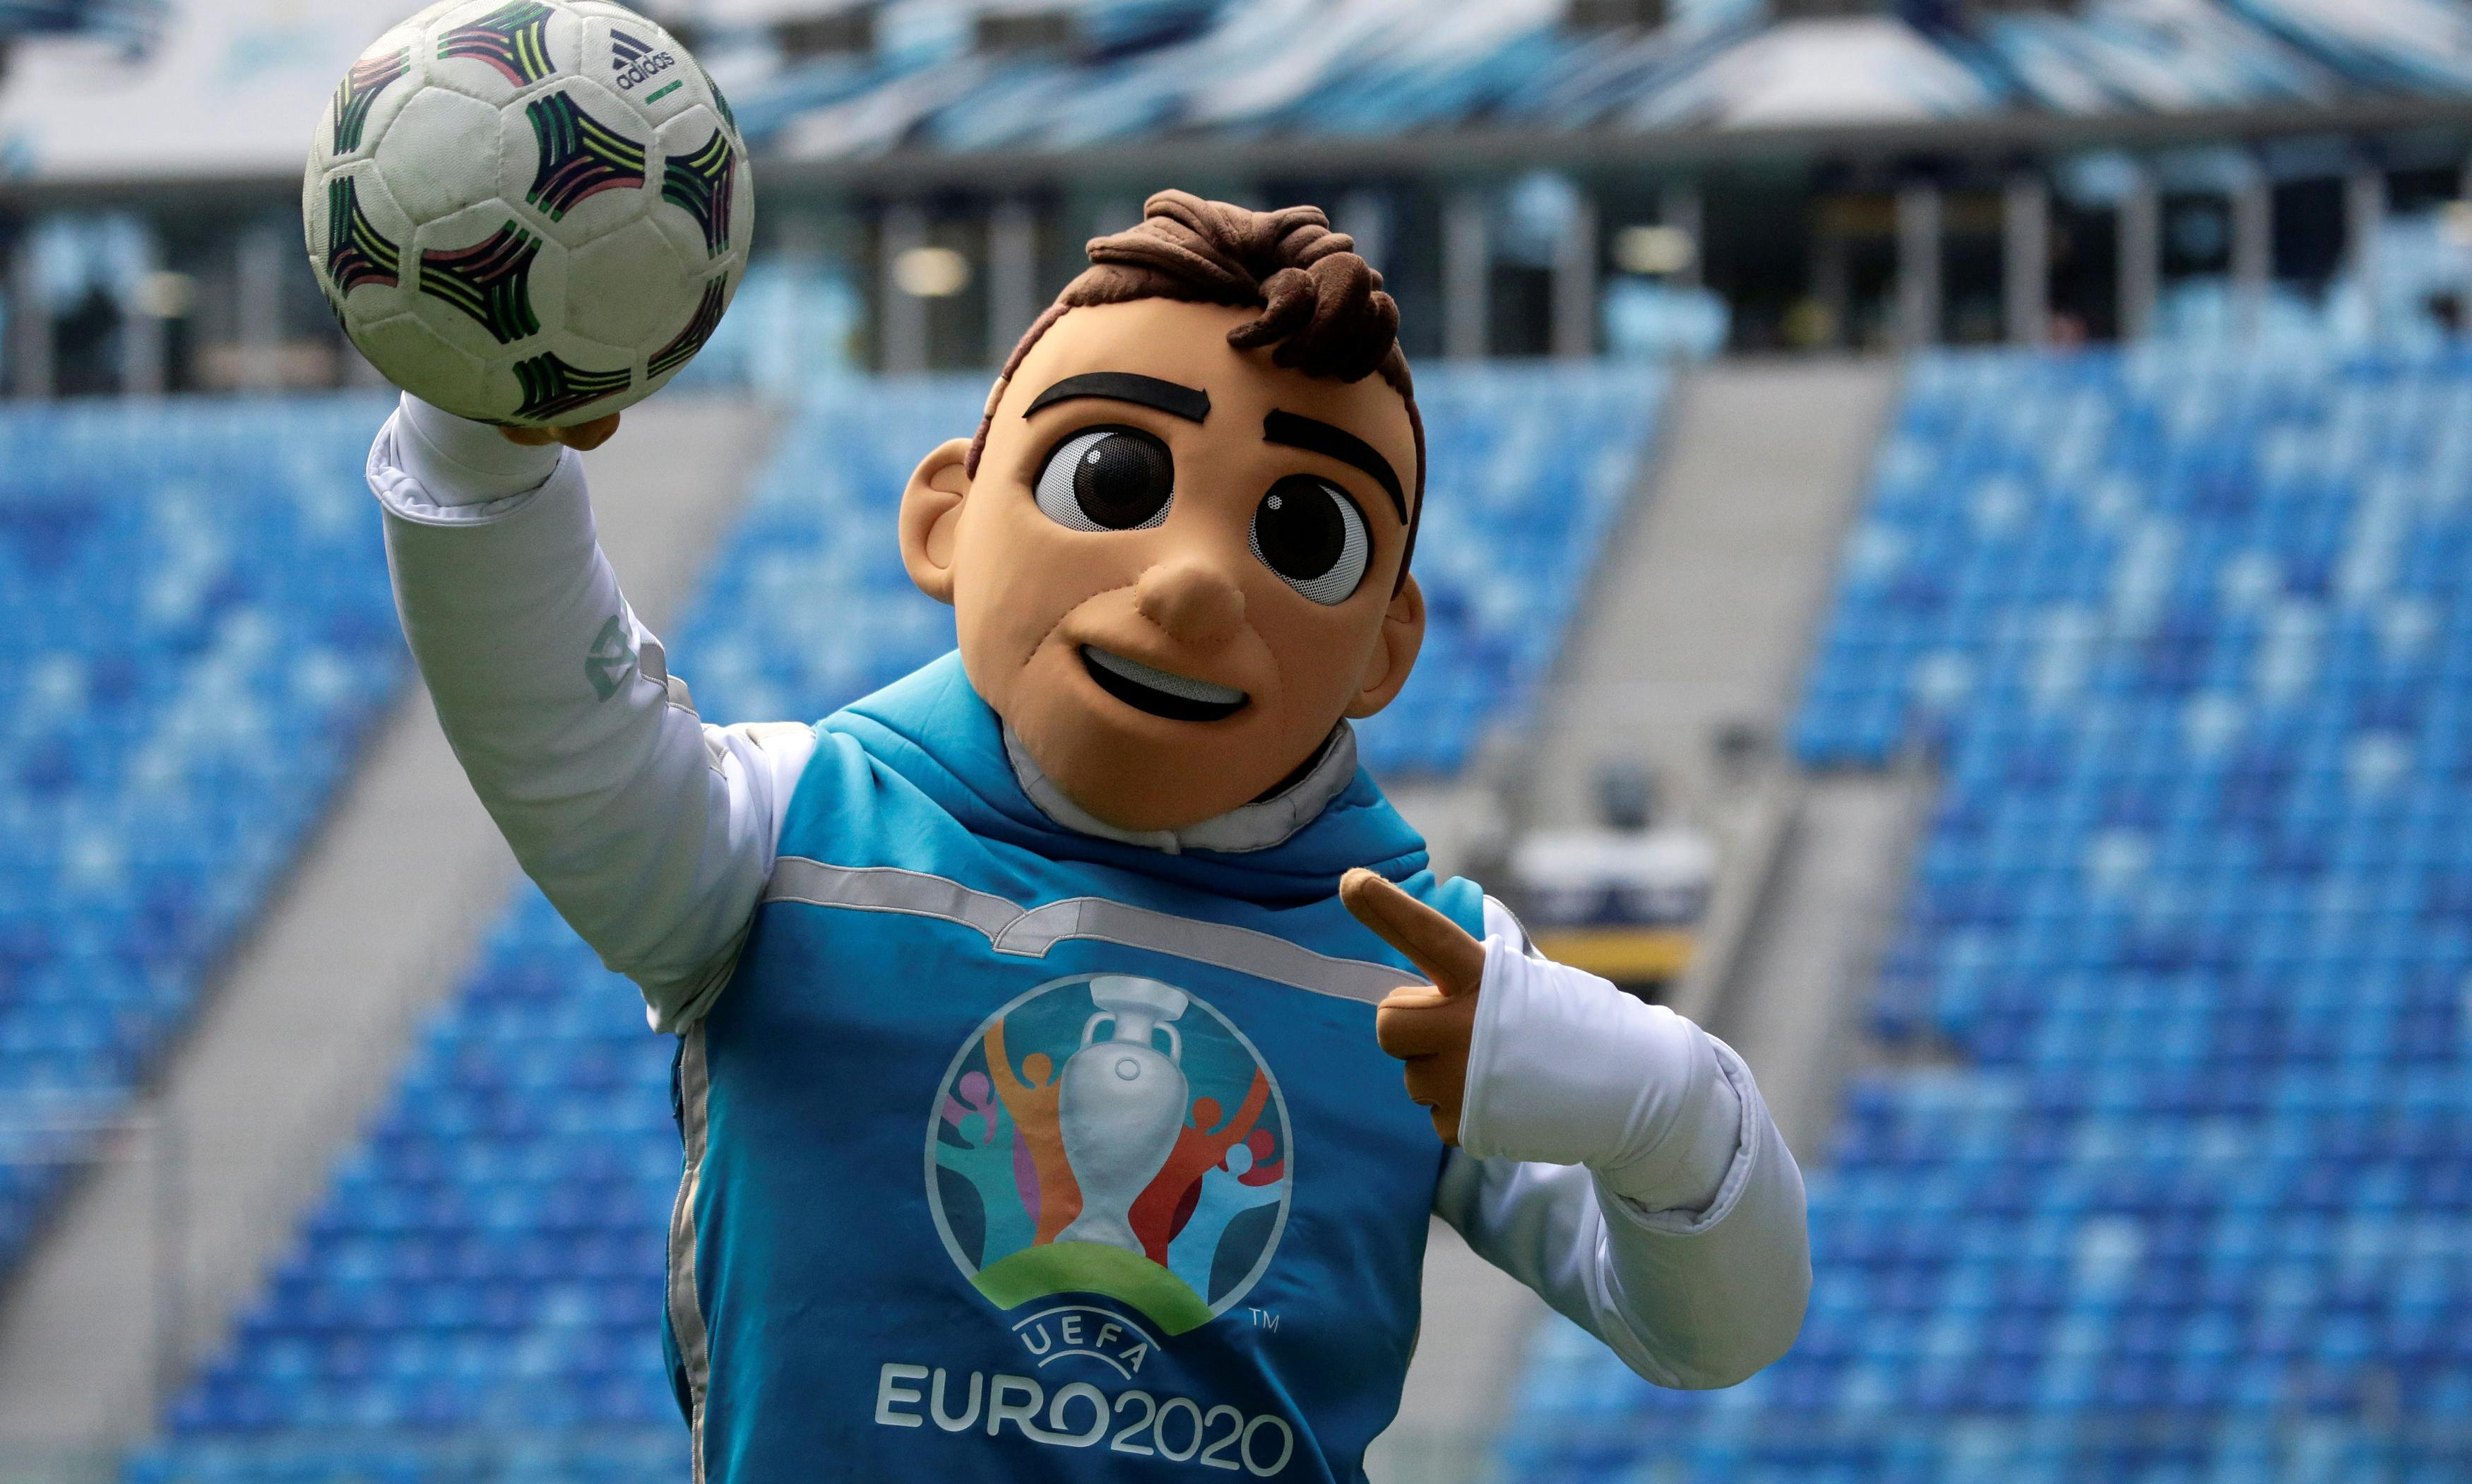 Uefa promise 82% of Euro 2020 tickets will go to fans and general public